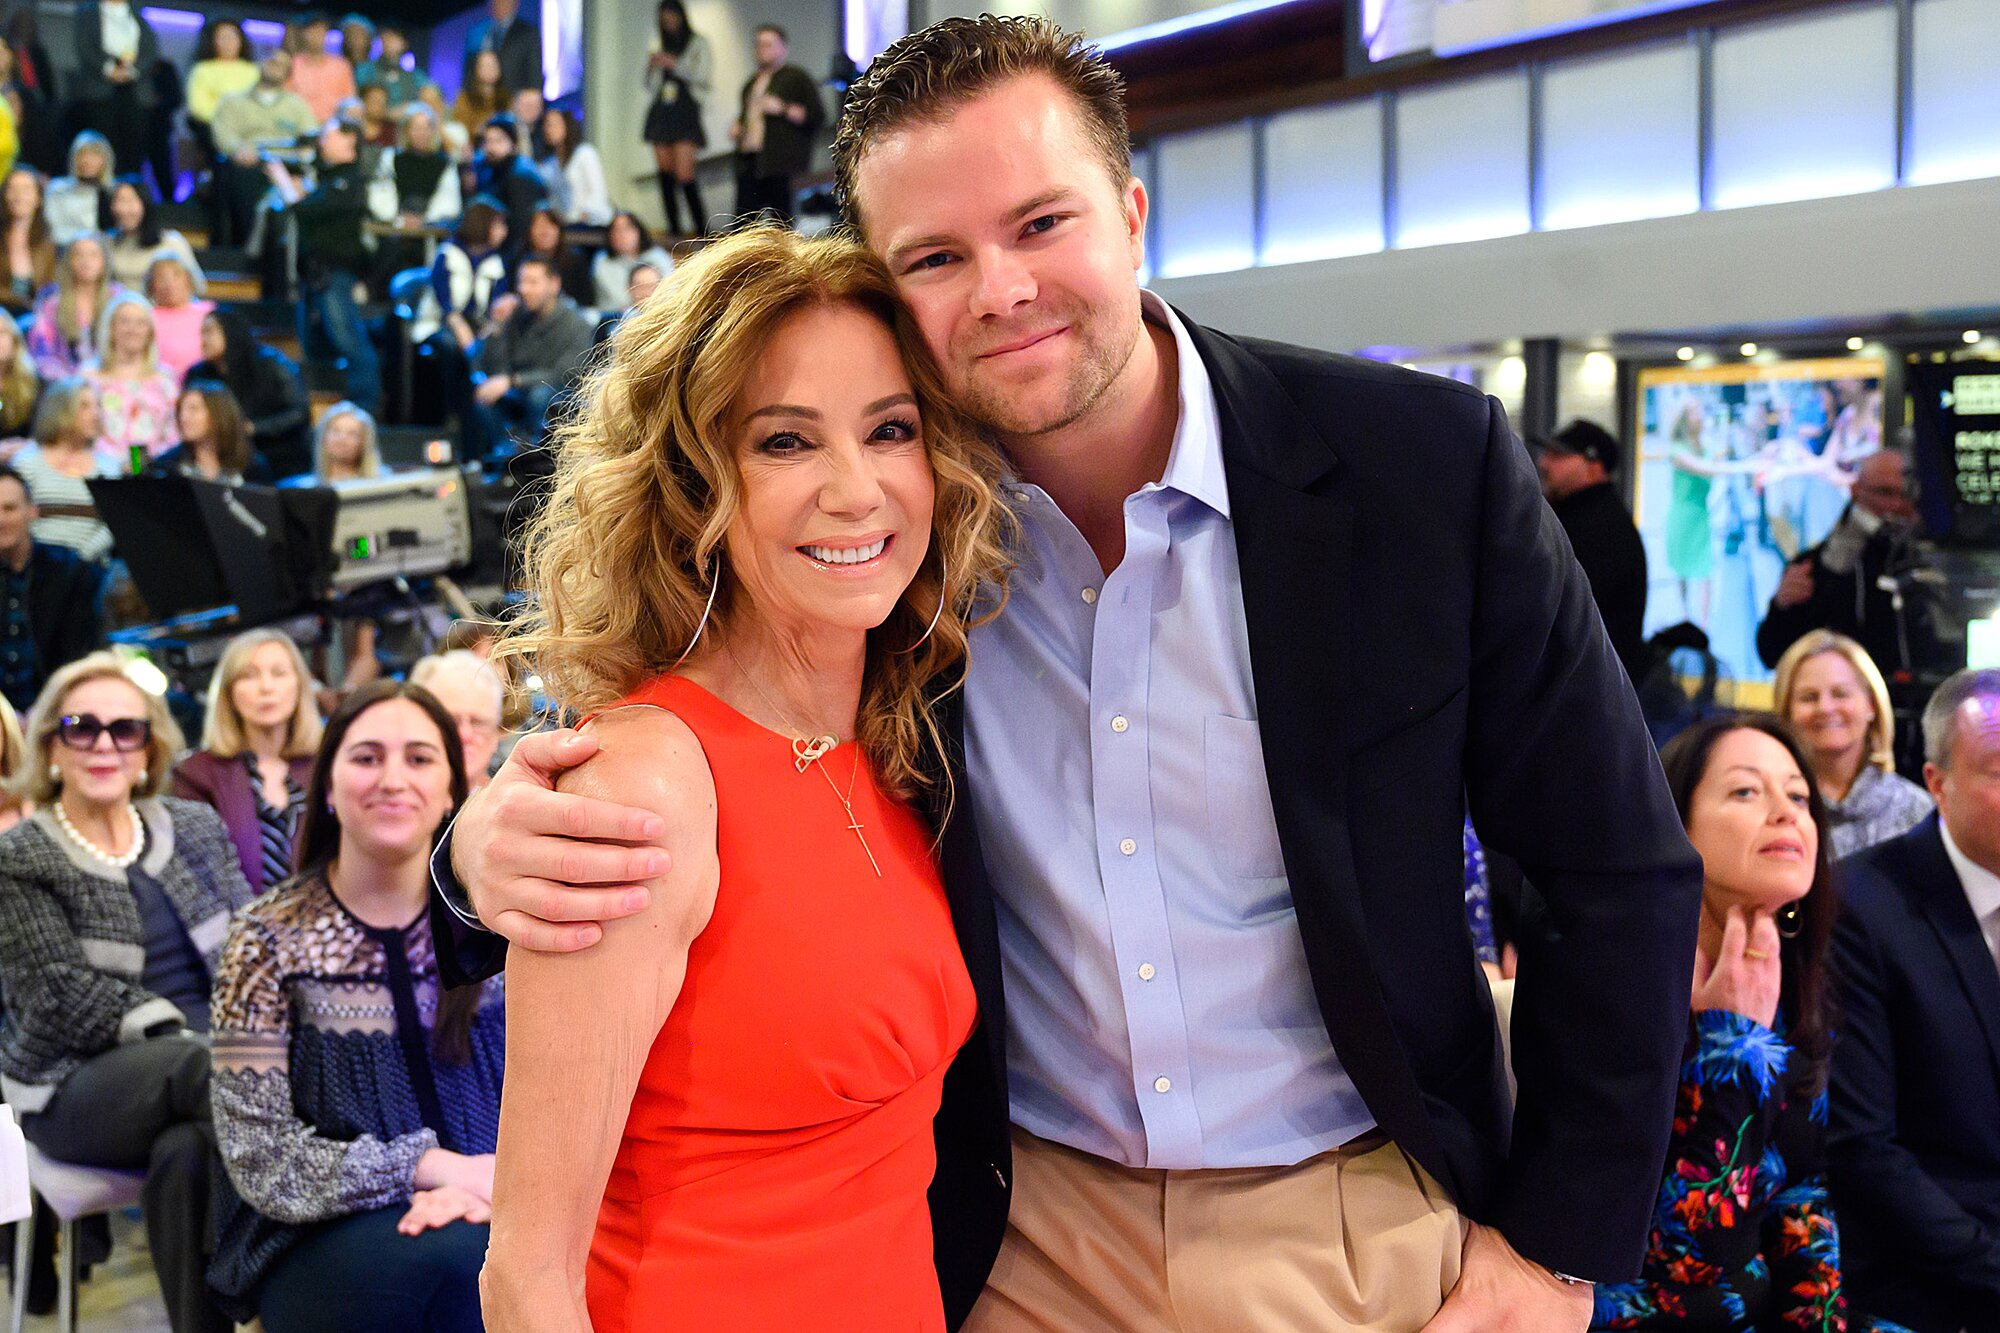 Kathie Lee Gifford and son Cody Gifford